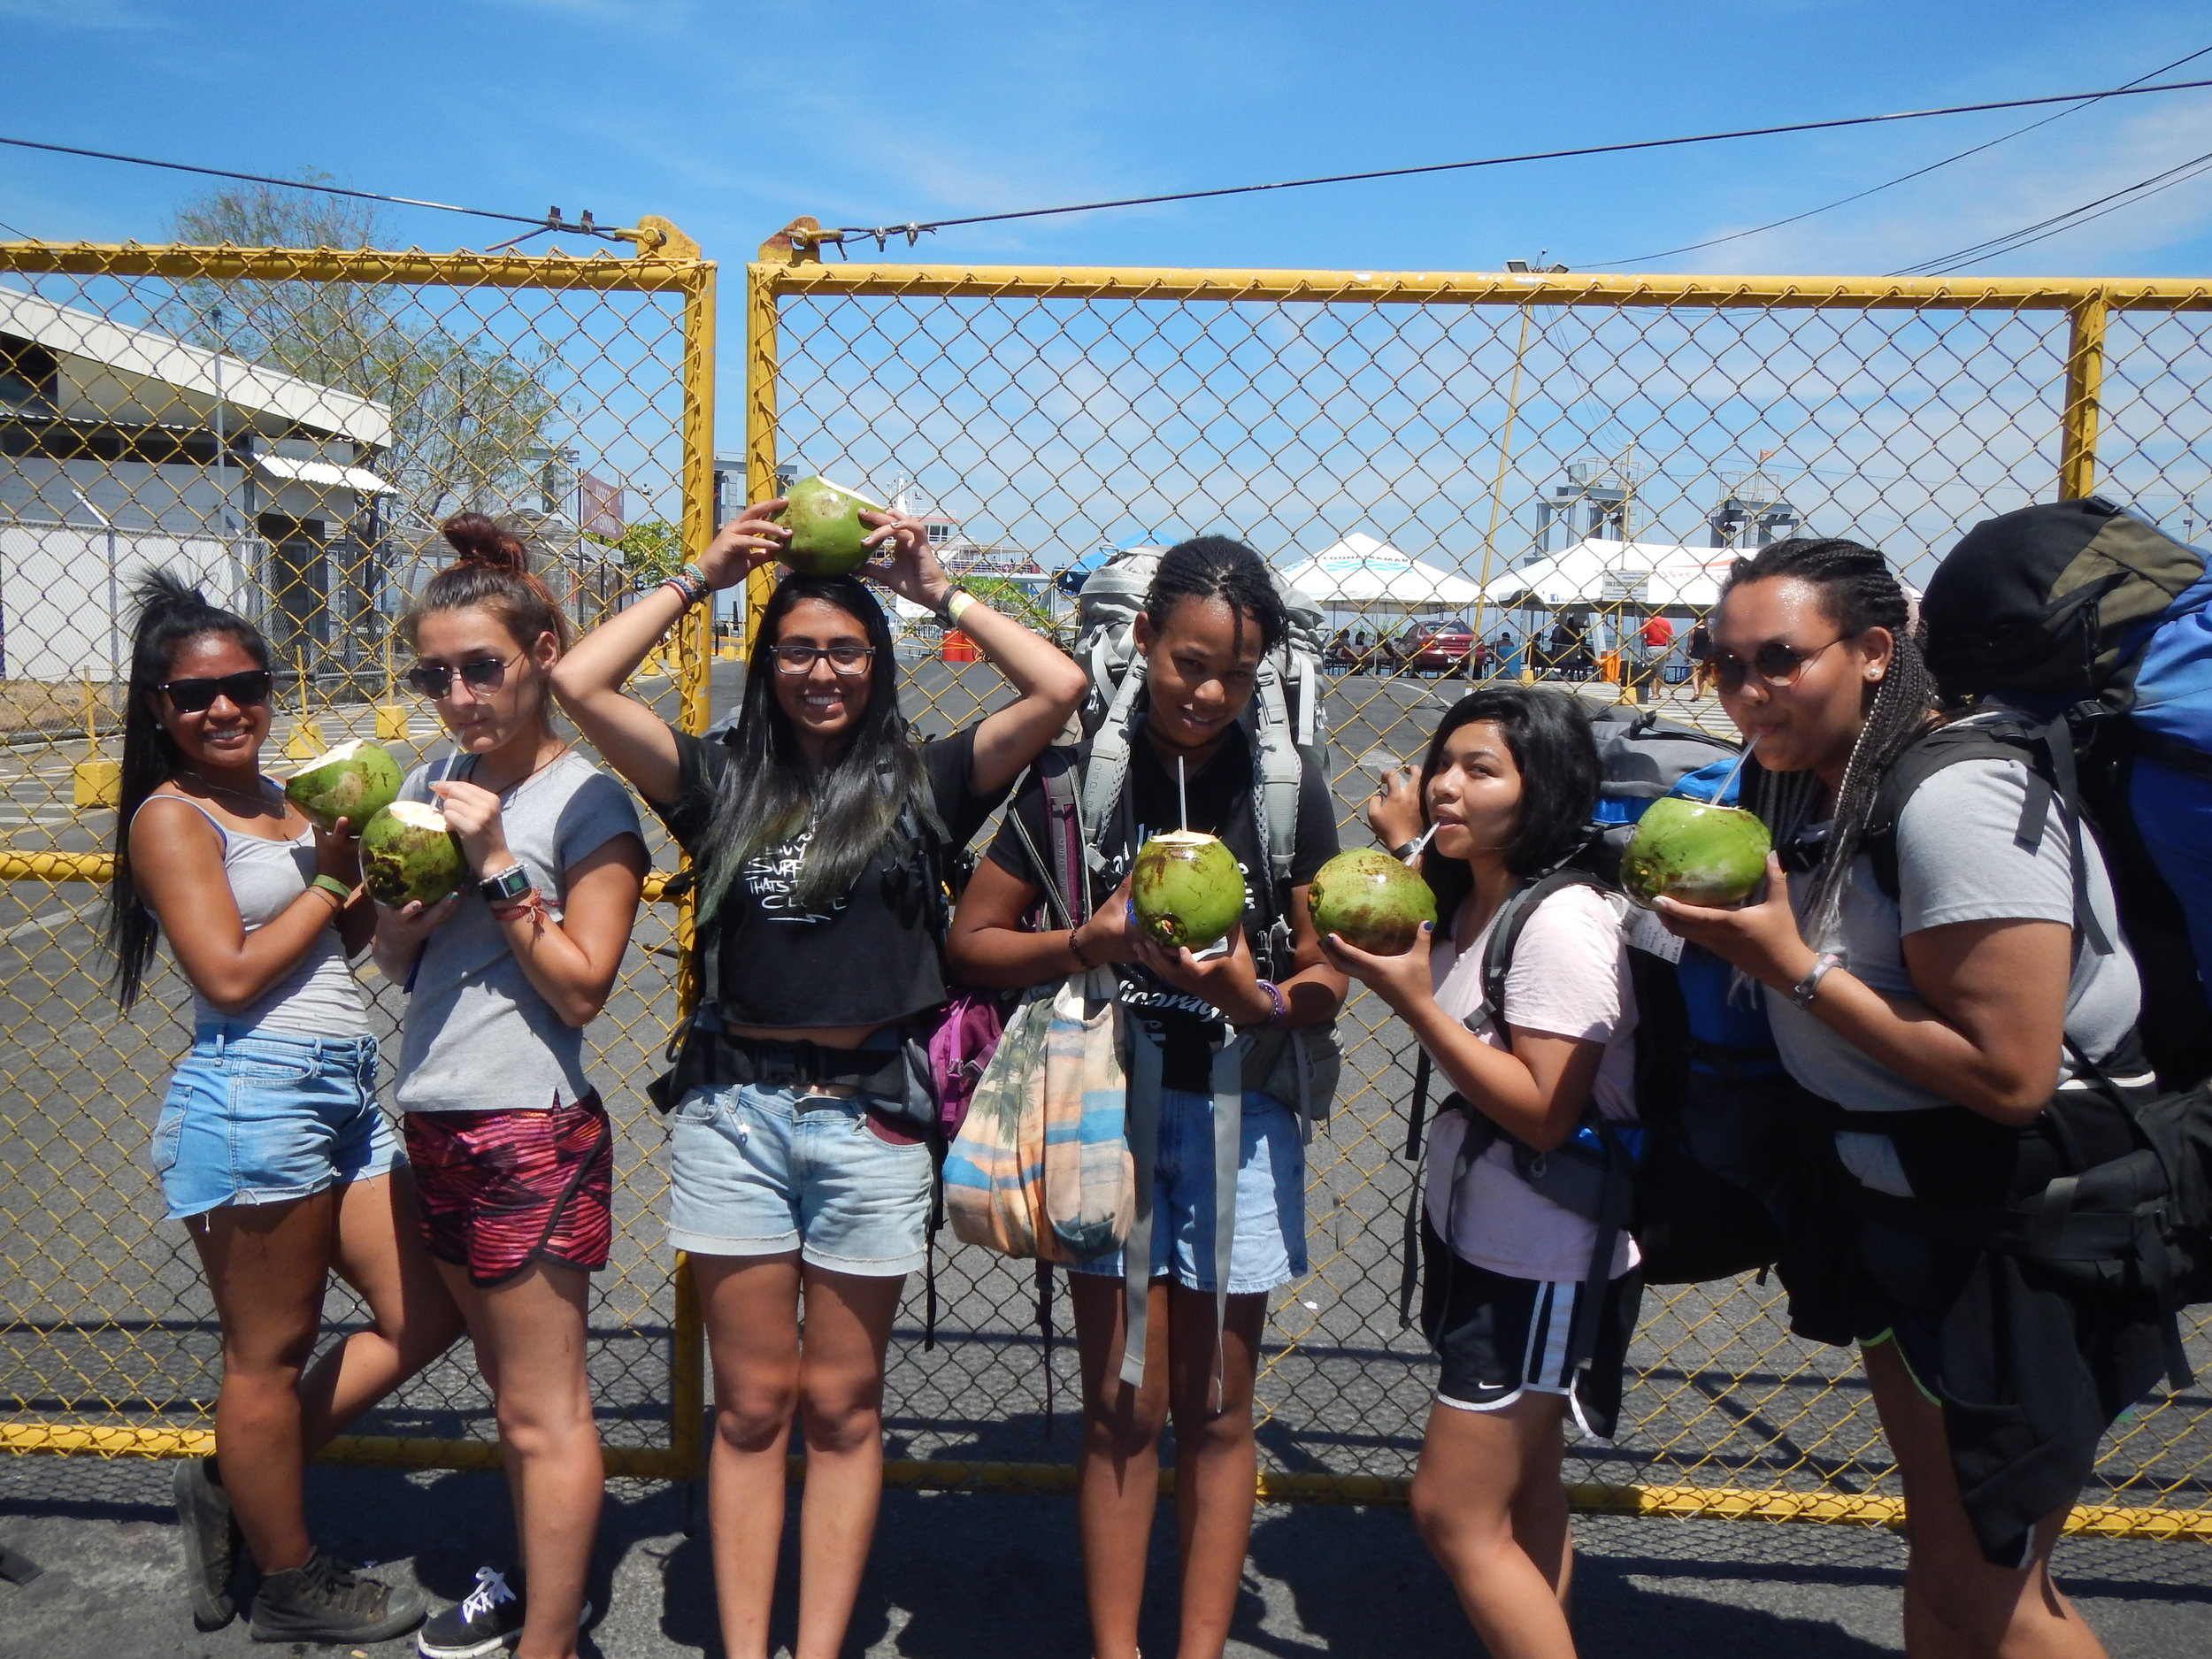 The chicas drinking pipa (cold coconuts) waiting for the ferry